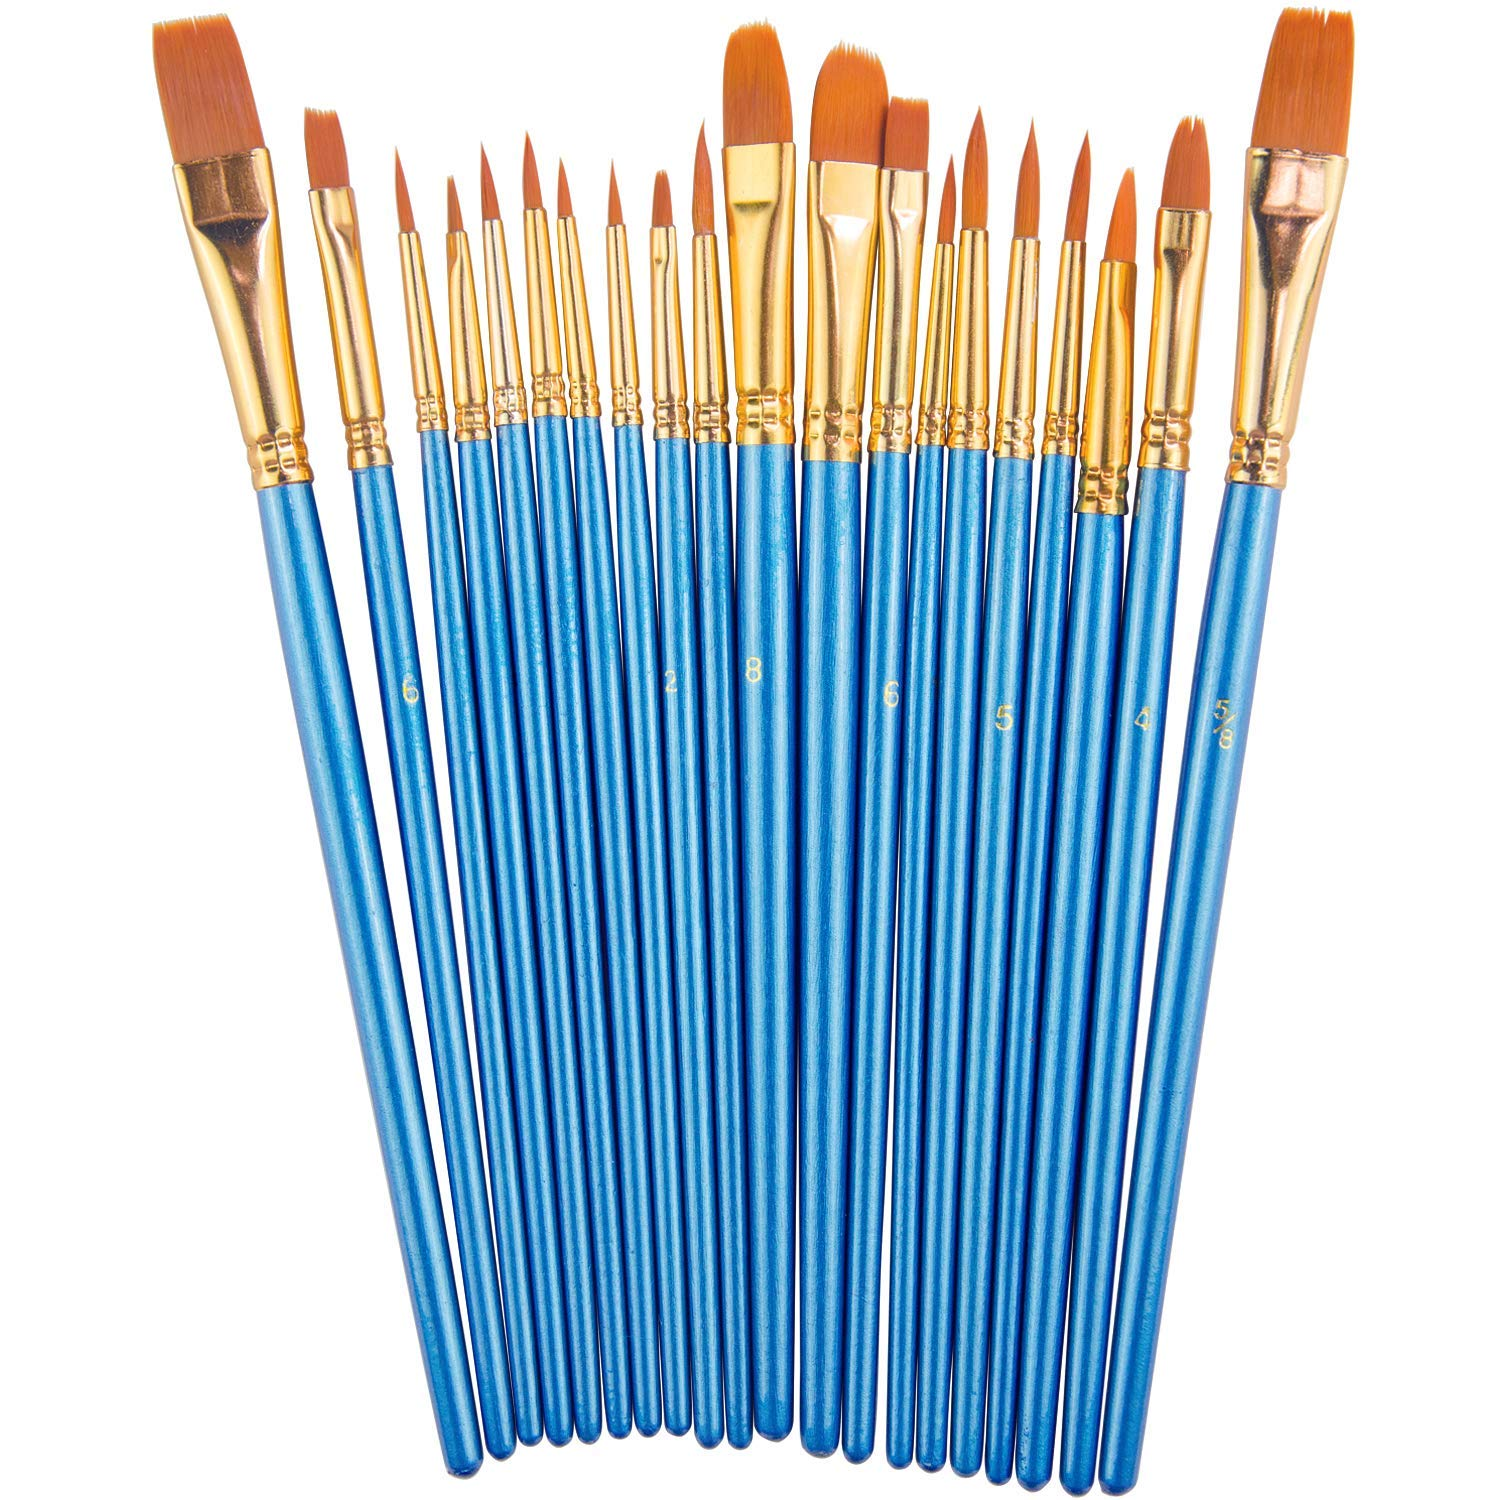 Paint Brush Set By, 20 Pcs Nylon Hair Brushes For Acrylic Oil Watercolor Painting Artist Professional Painting Kits